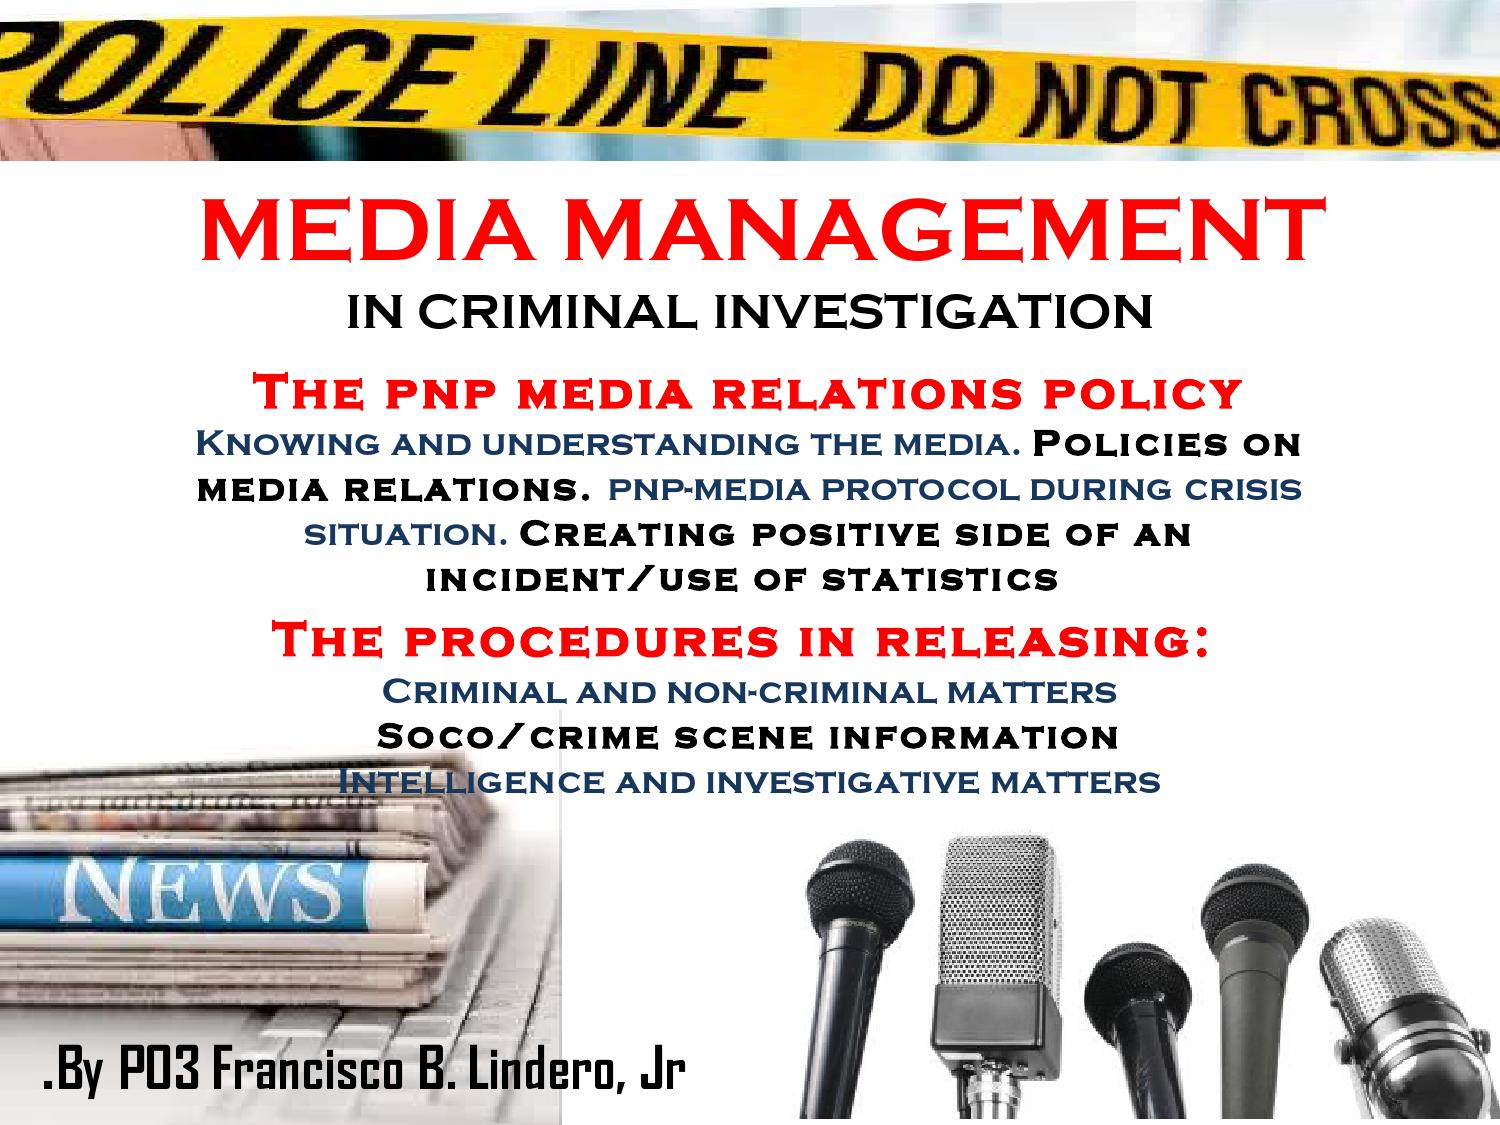 Media Management In Criminal Investigation By Res Gestae. Hotel Rex In San Francisco Bpm Magic Quadrant. What Does A Web Designer Do Dr Geoffrey Cox. Hvac Companies In Dallas Tx On Line Checks. Online Fire Protection Engineering Degree. China Embassy In Pakistan Home Automation Com. Working Laws For Minors Anelik Money Transfer. Medical Assistant Responsibilities. After Effects Animated Backgrounds